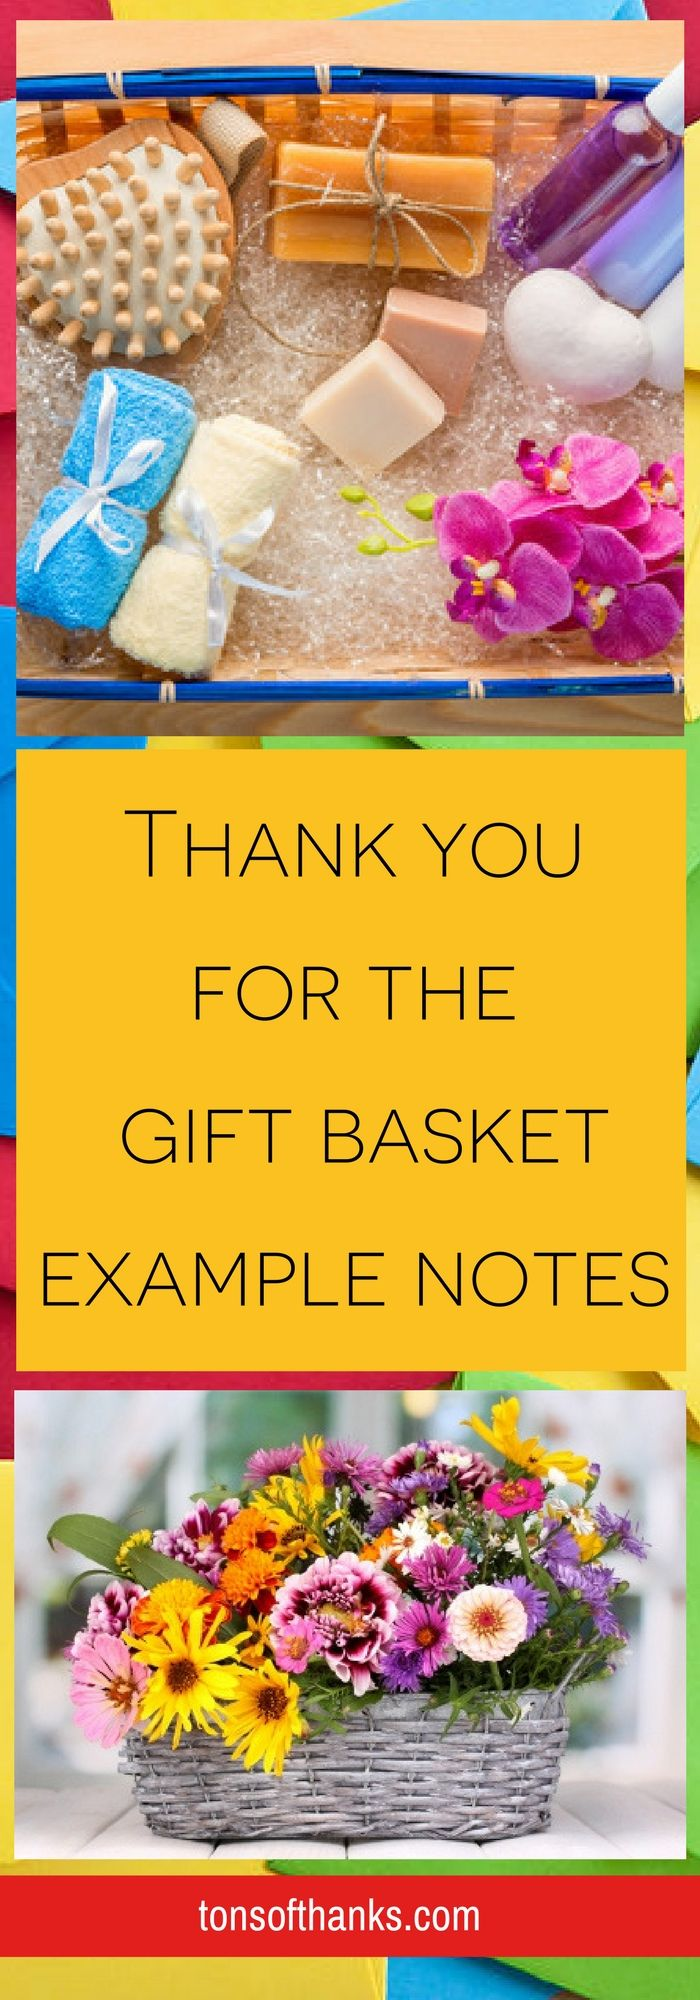 Thank you for the gift basket example